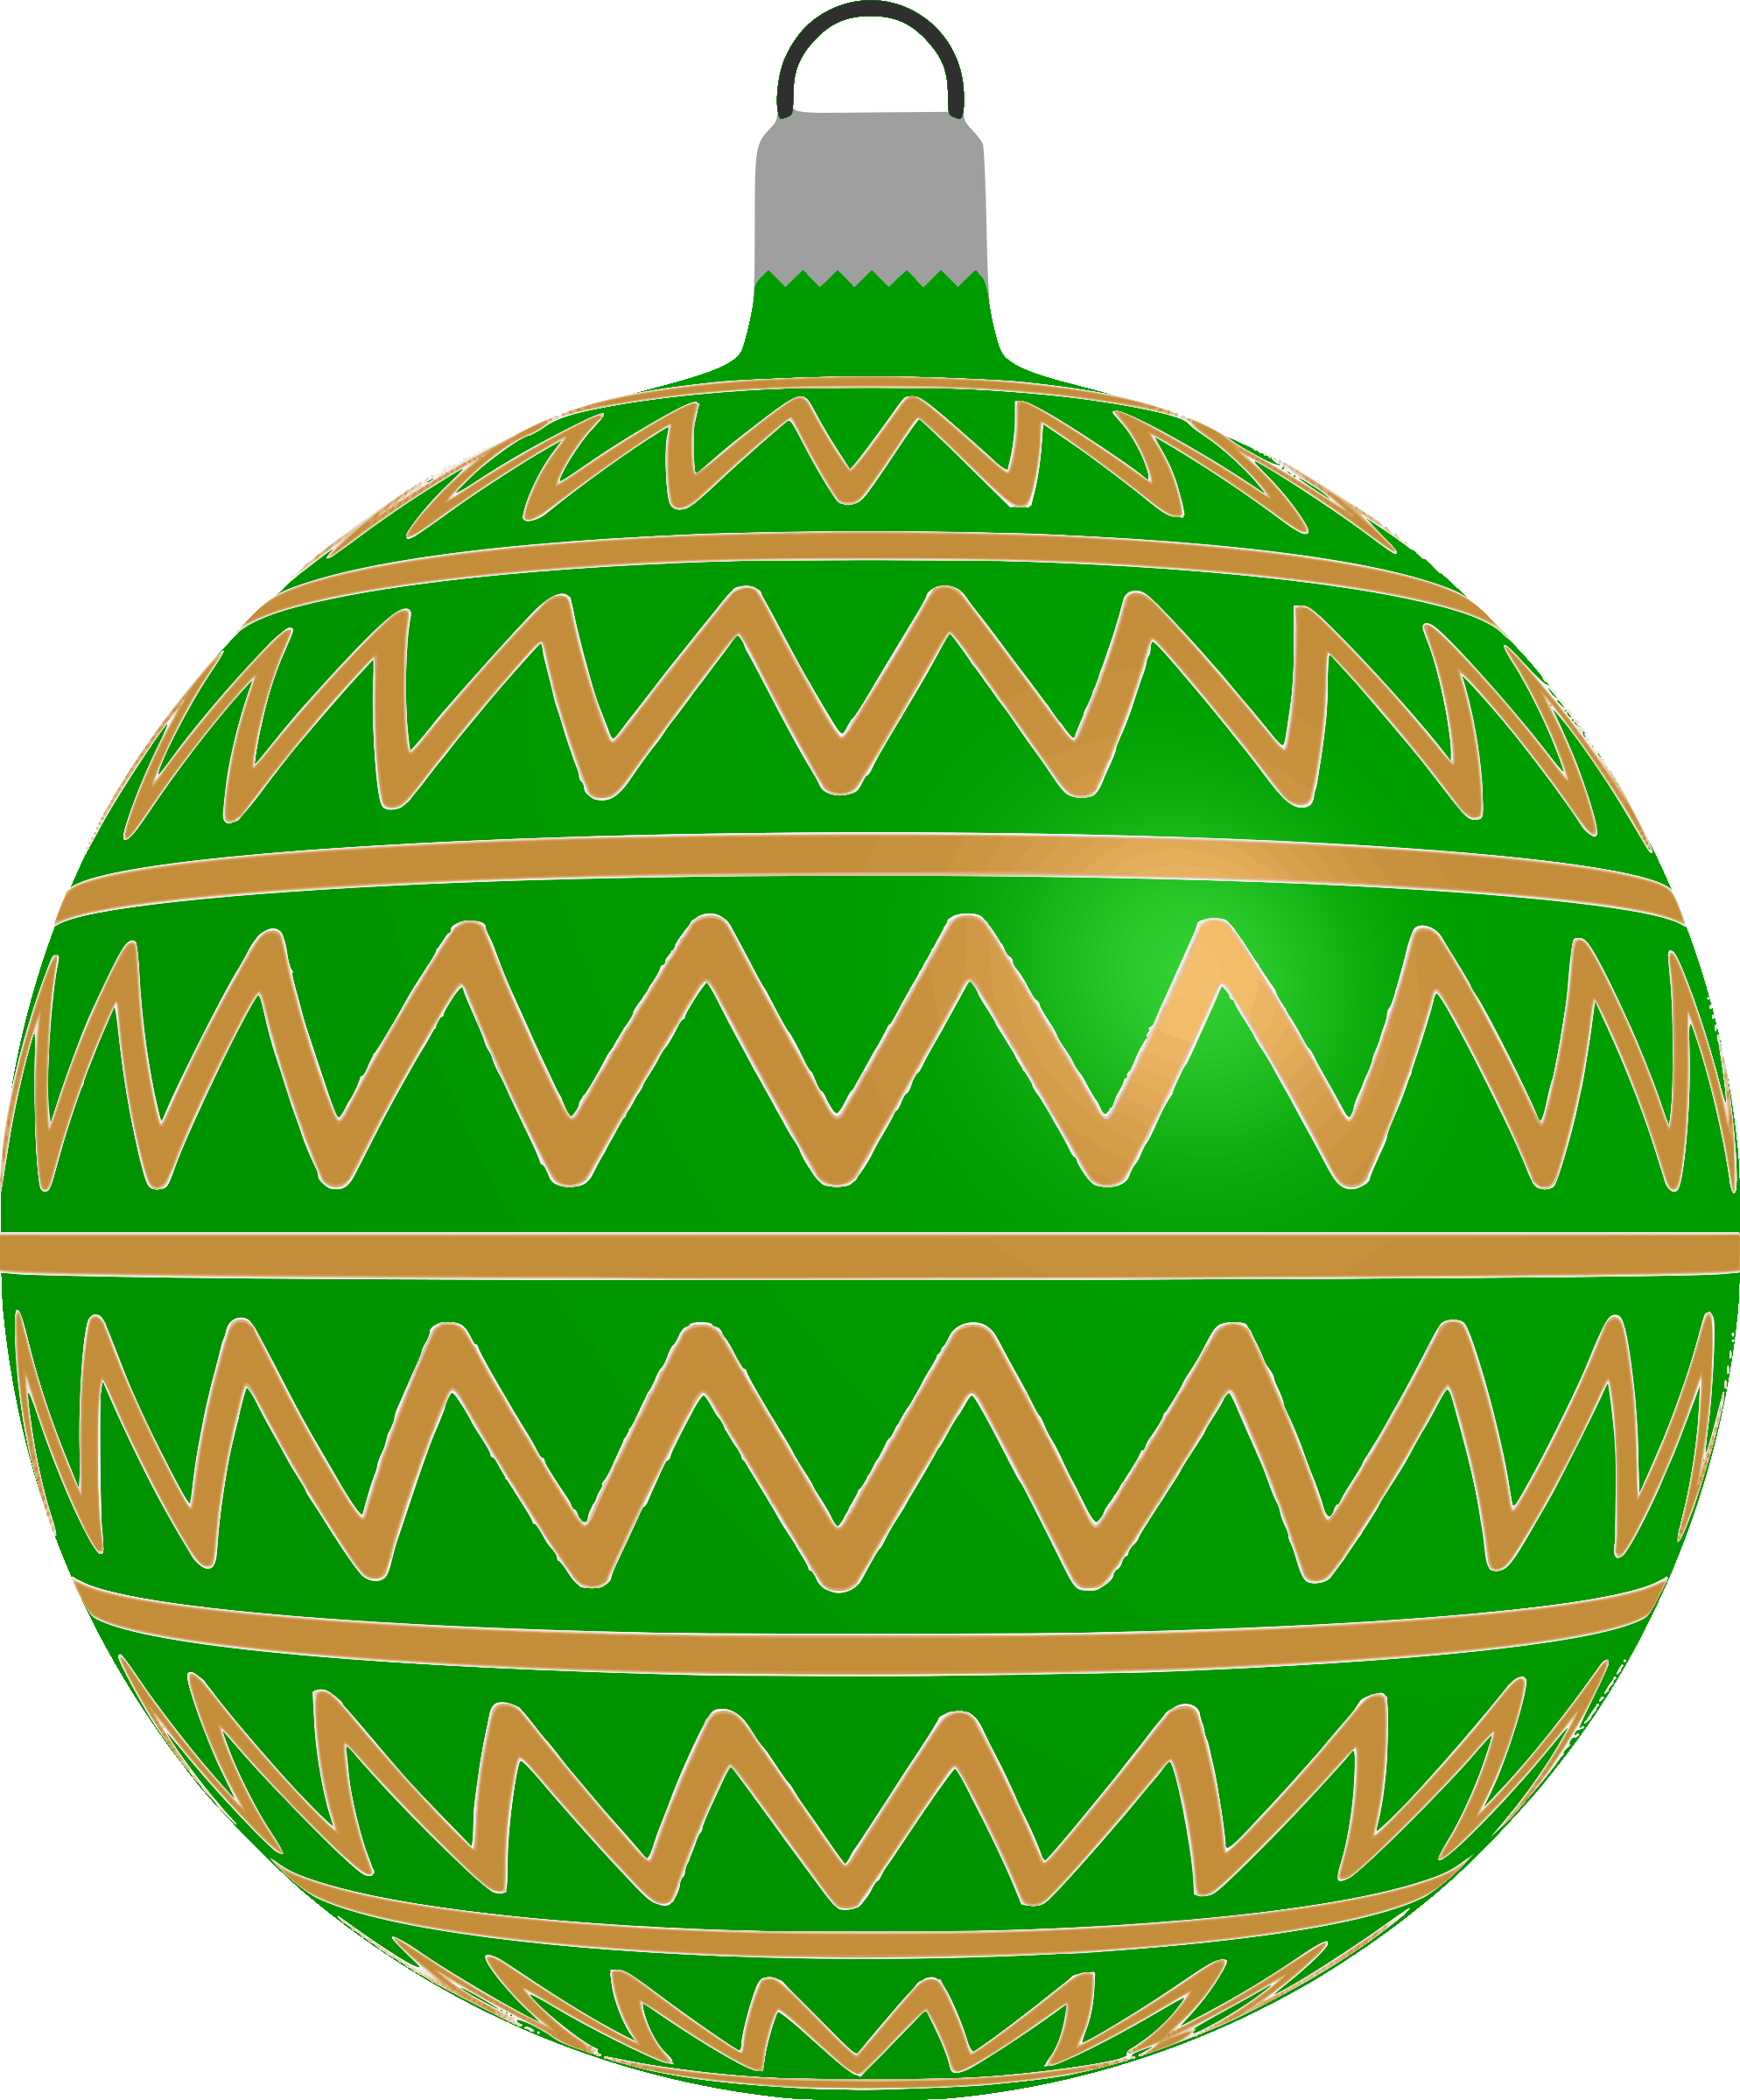 Patterned bauble 2 (green) by Firkin